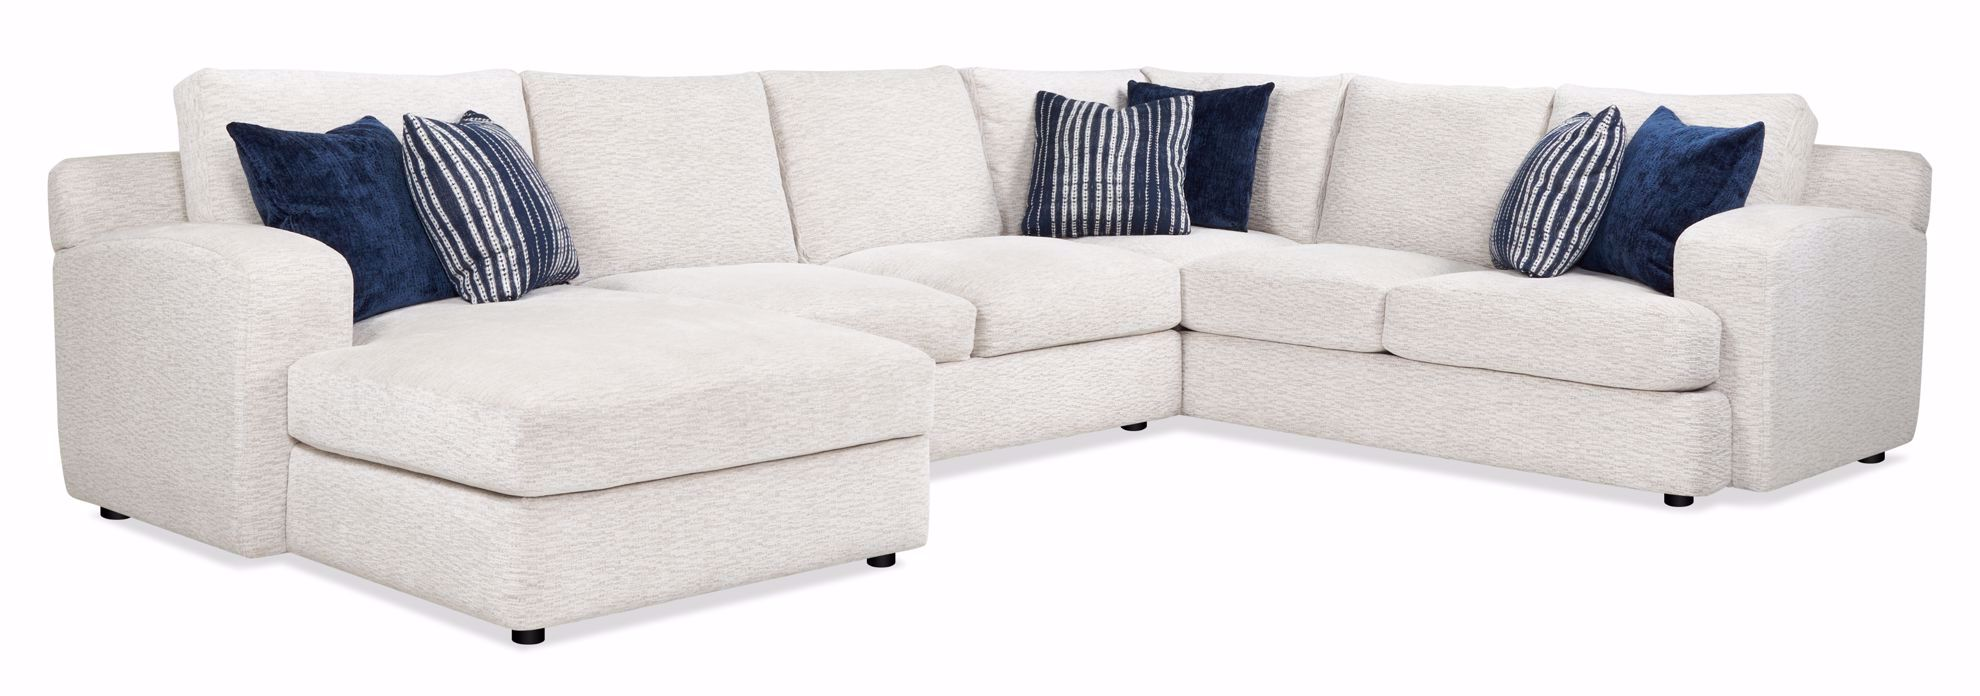 Picture of LaJolla 3-Piece Sectional